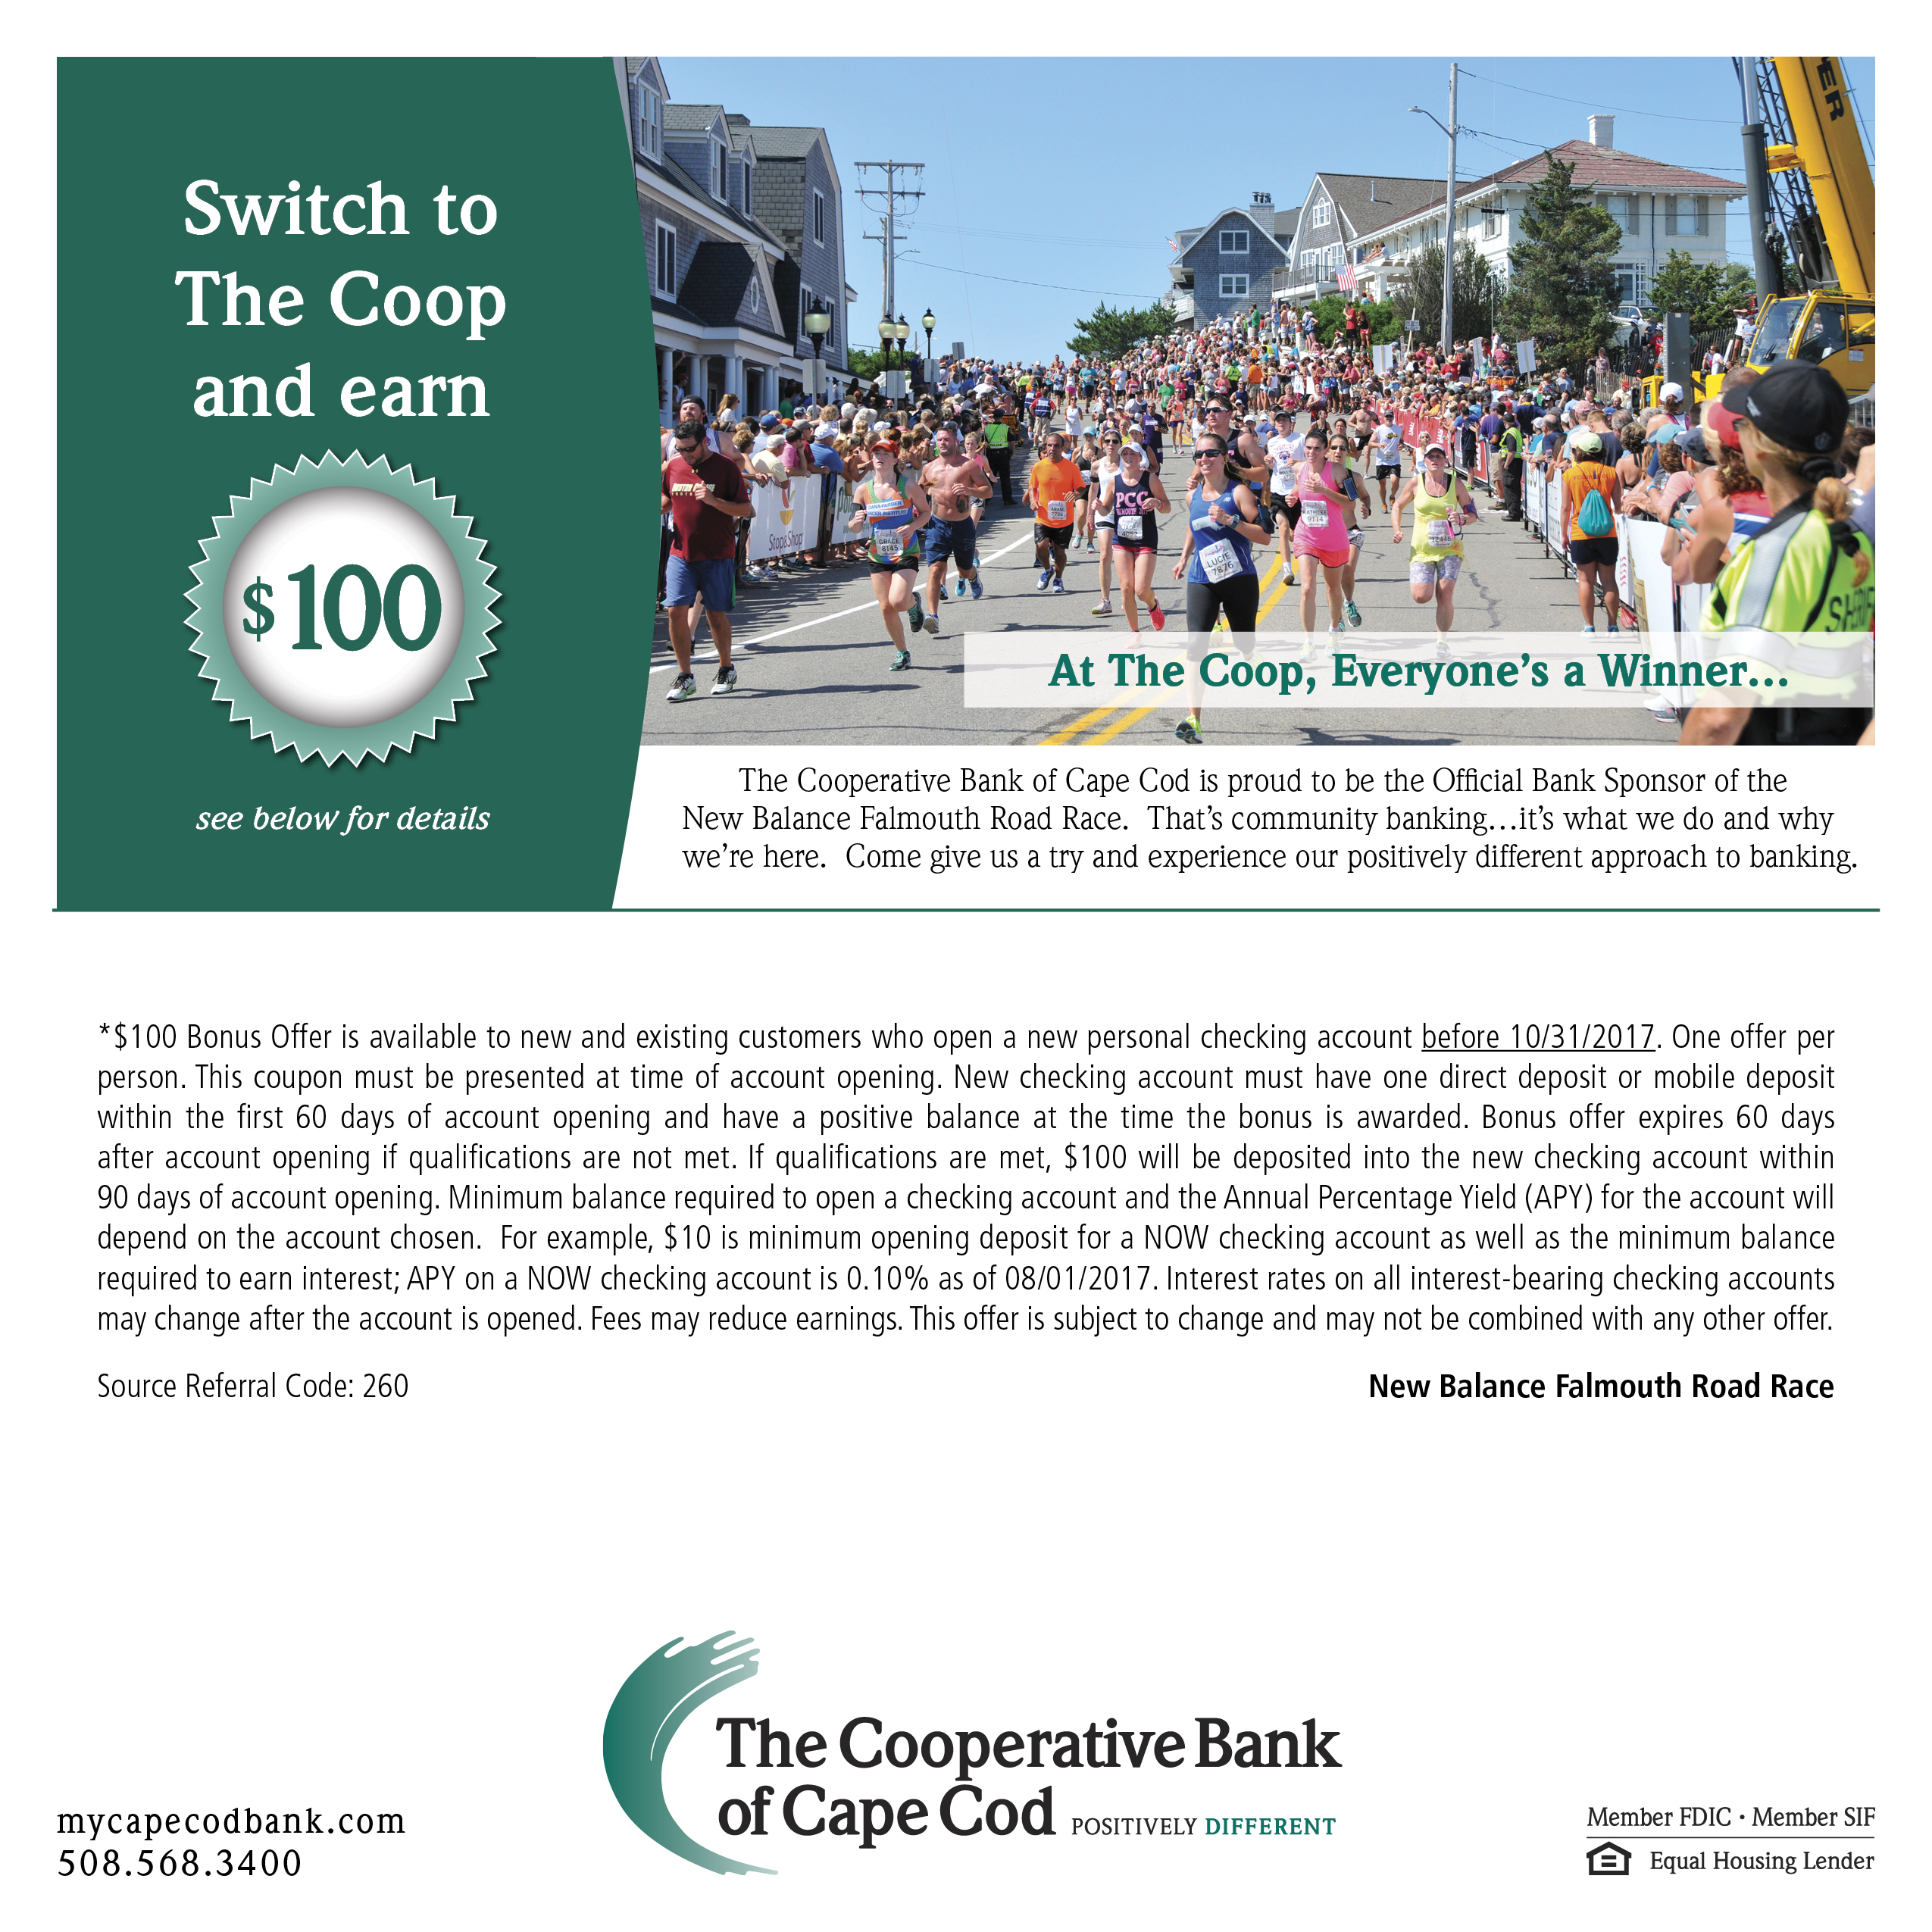 Falmouth Road Race $100 Offer